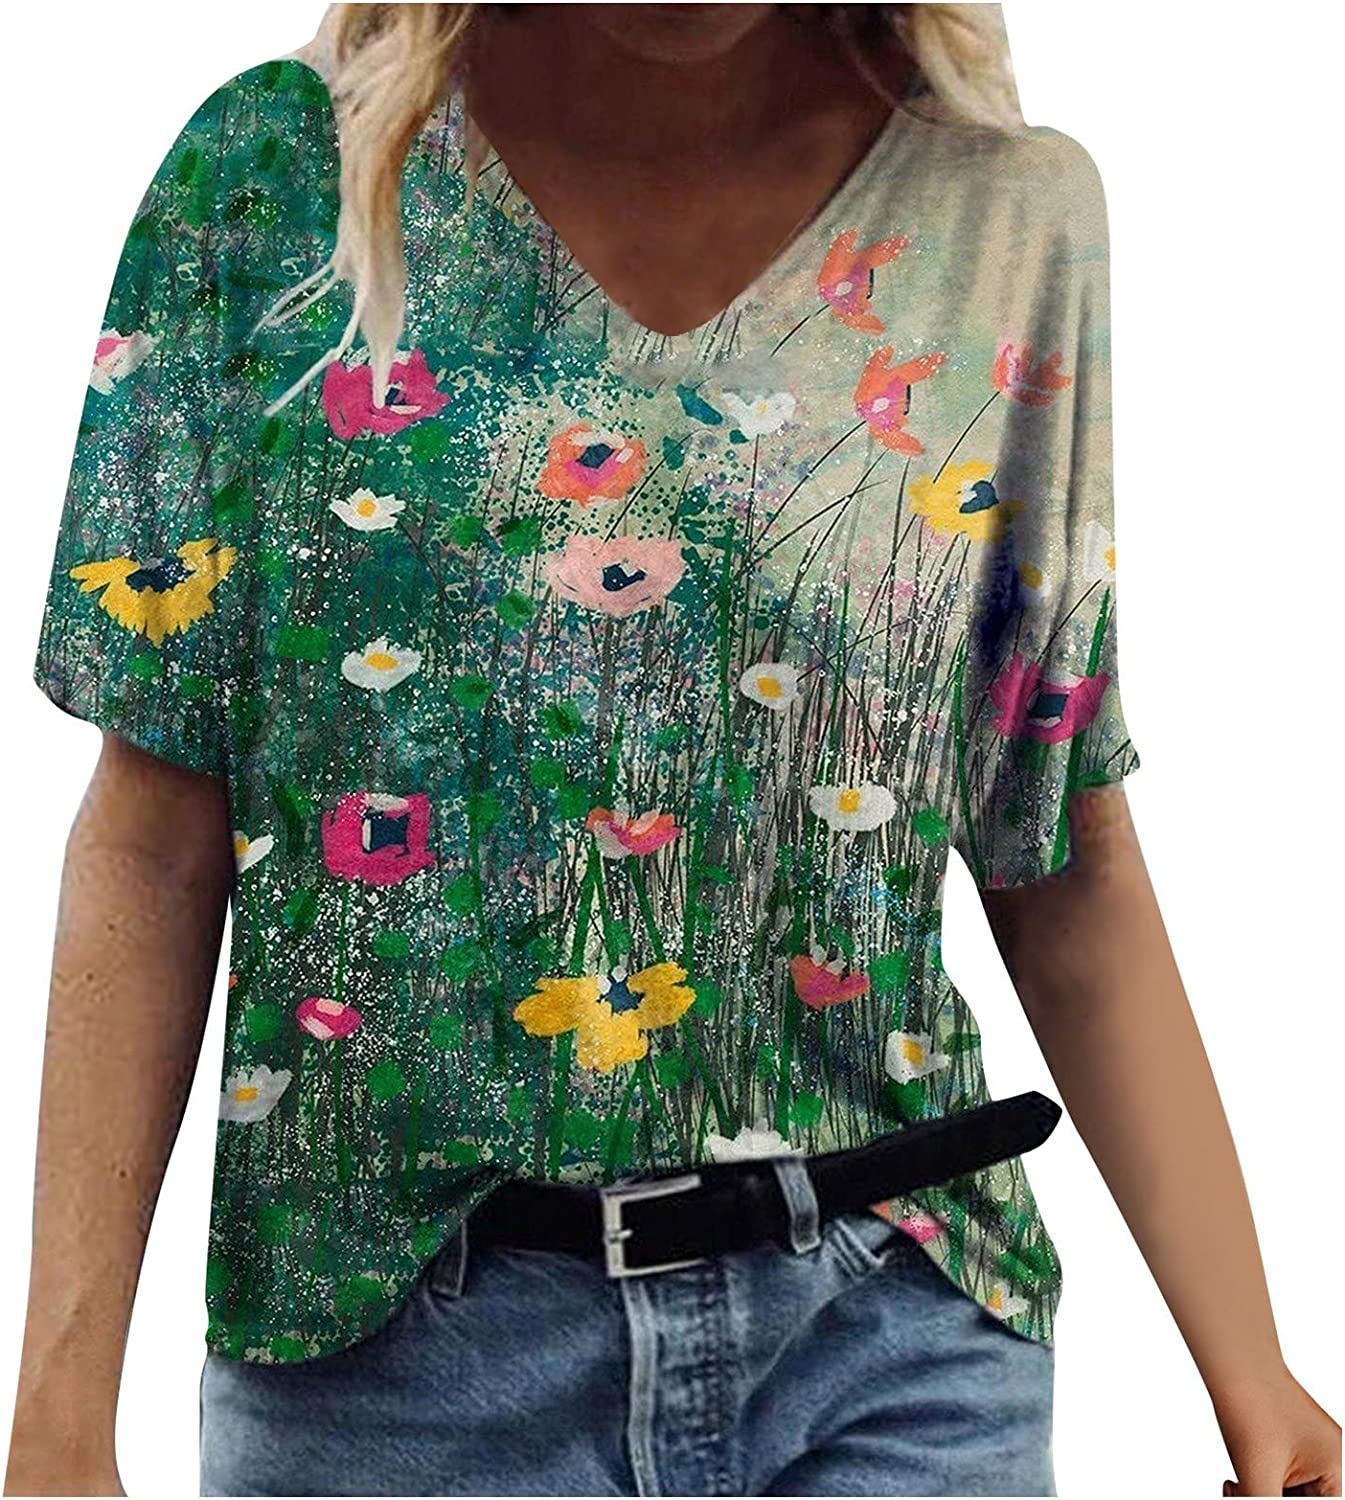 Womens Short Sleeve Tops, Womens Summer T-Shirts Abstract Vintage Print Casual V-Neck Blouse Tops Tunics Graphic Tee